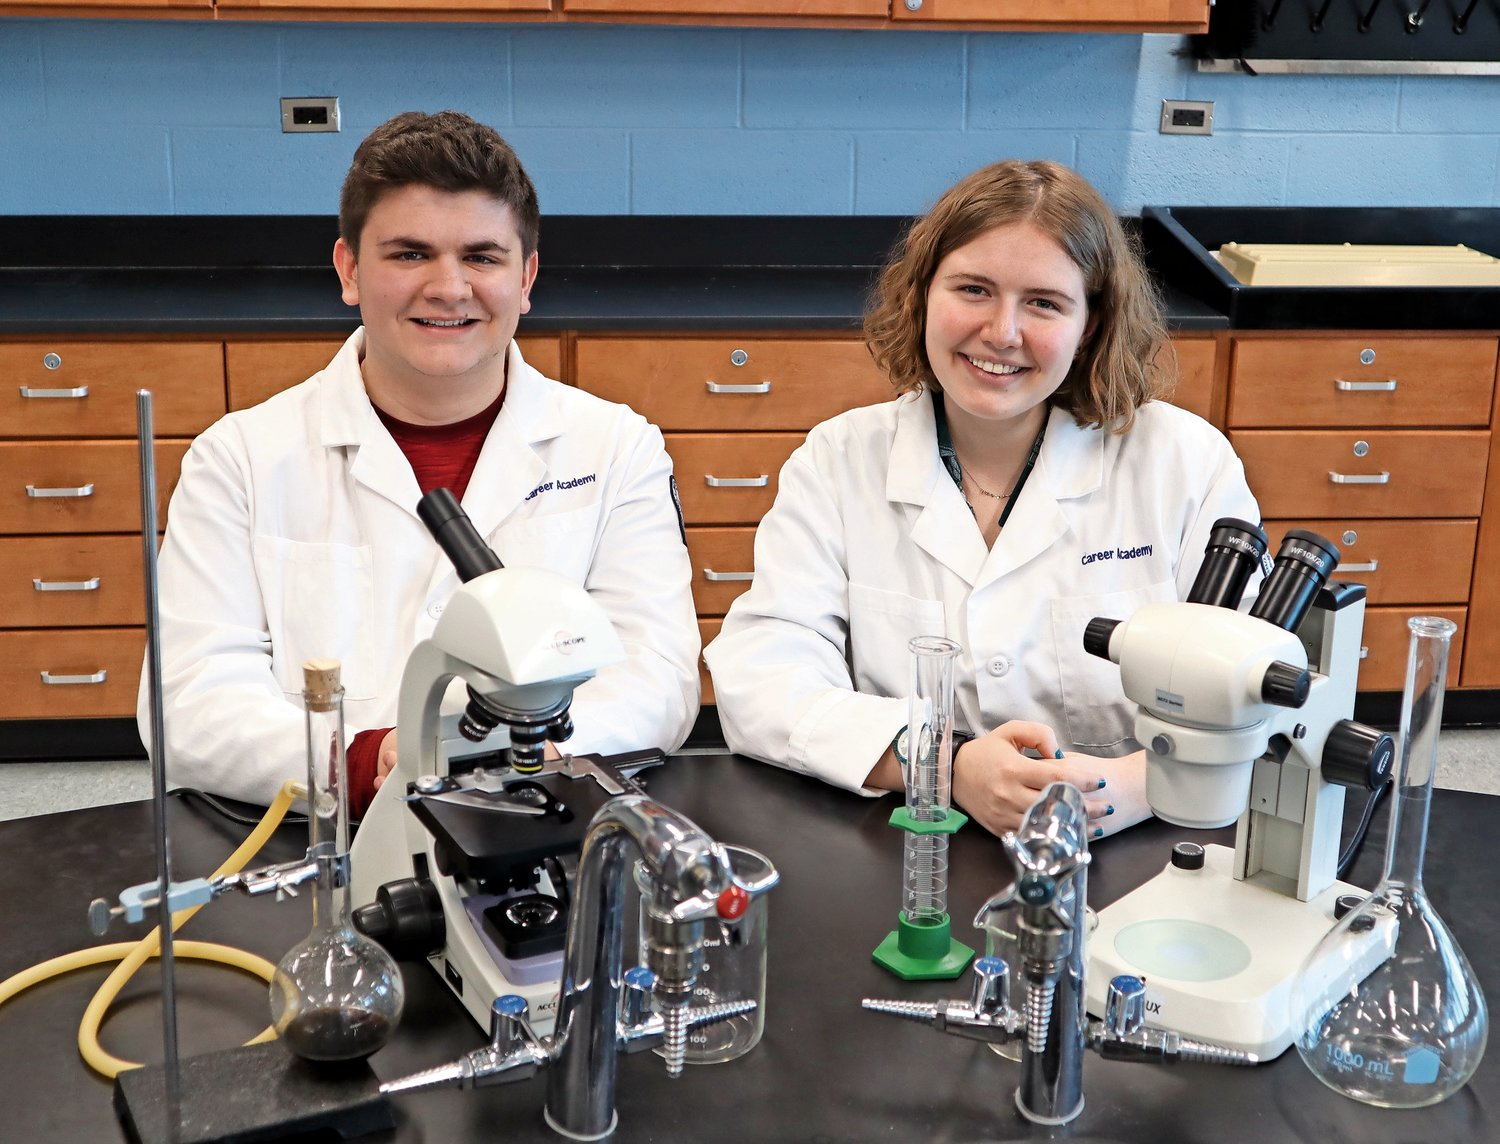 Andrew Brinton and Katherine St George are only the fifth and sixth students from John F. Kennedy High School to be named finalists in the prestigious Science Talent Search competition.